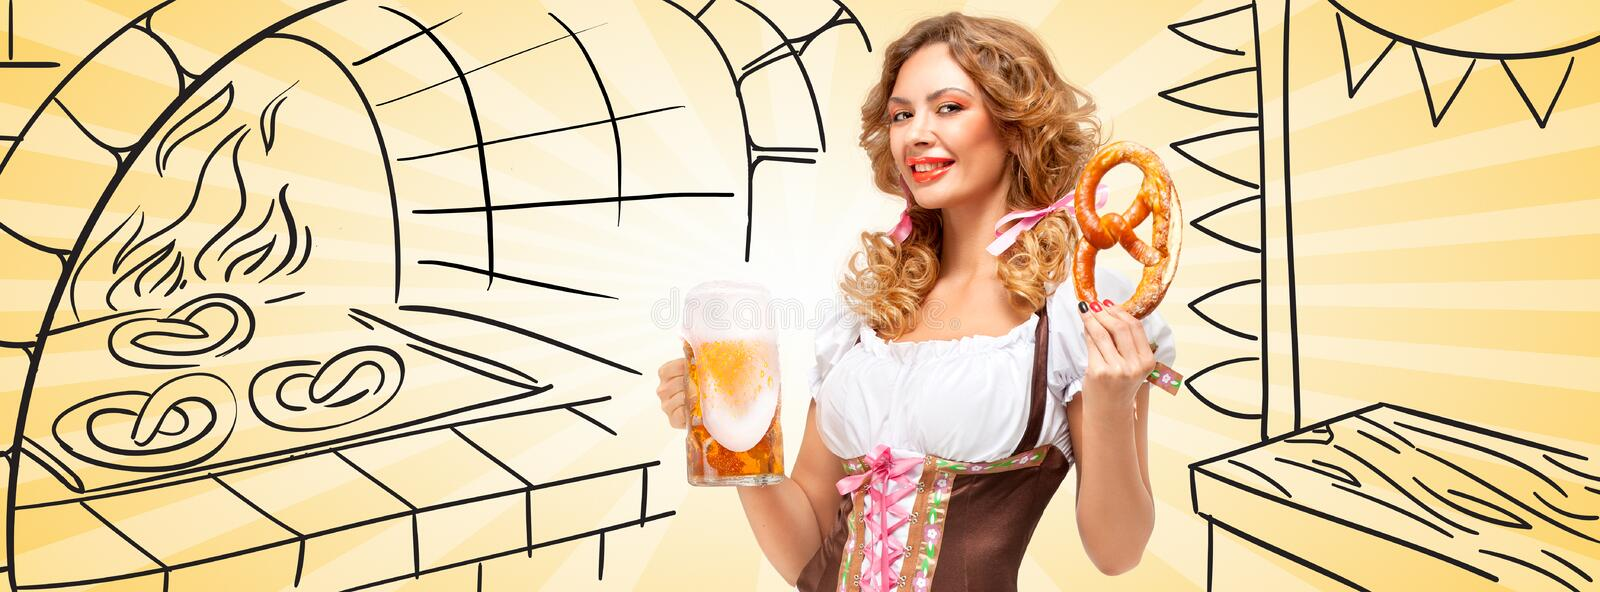 Beer and snack. Beautiful Oktoberfest woman wearing a traditional Bavarian dress dirndl holding a pretzel and beer mug on sketchy pretzel bake oven background stock photo